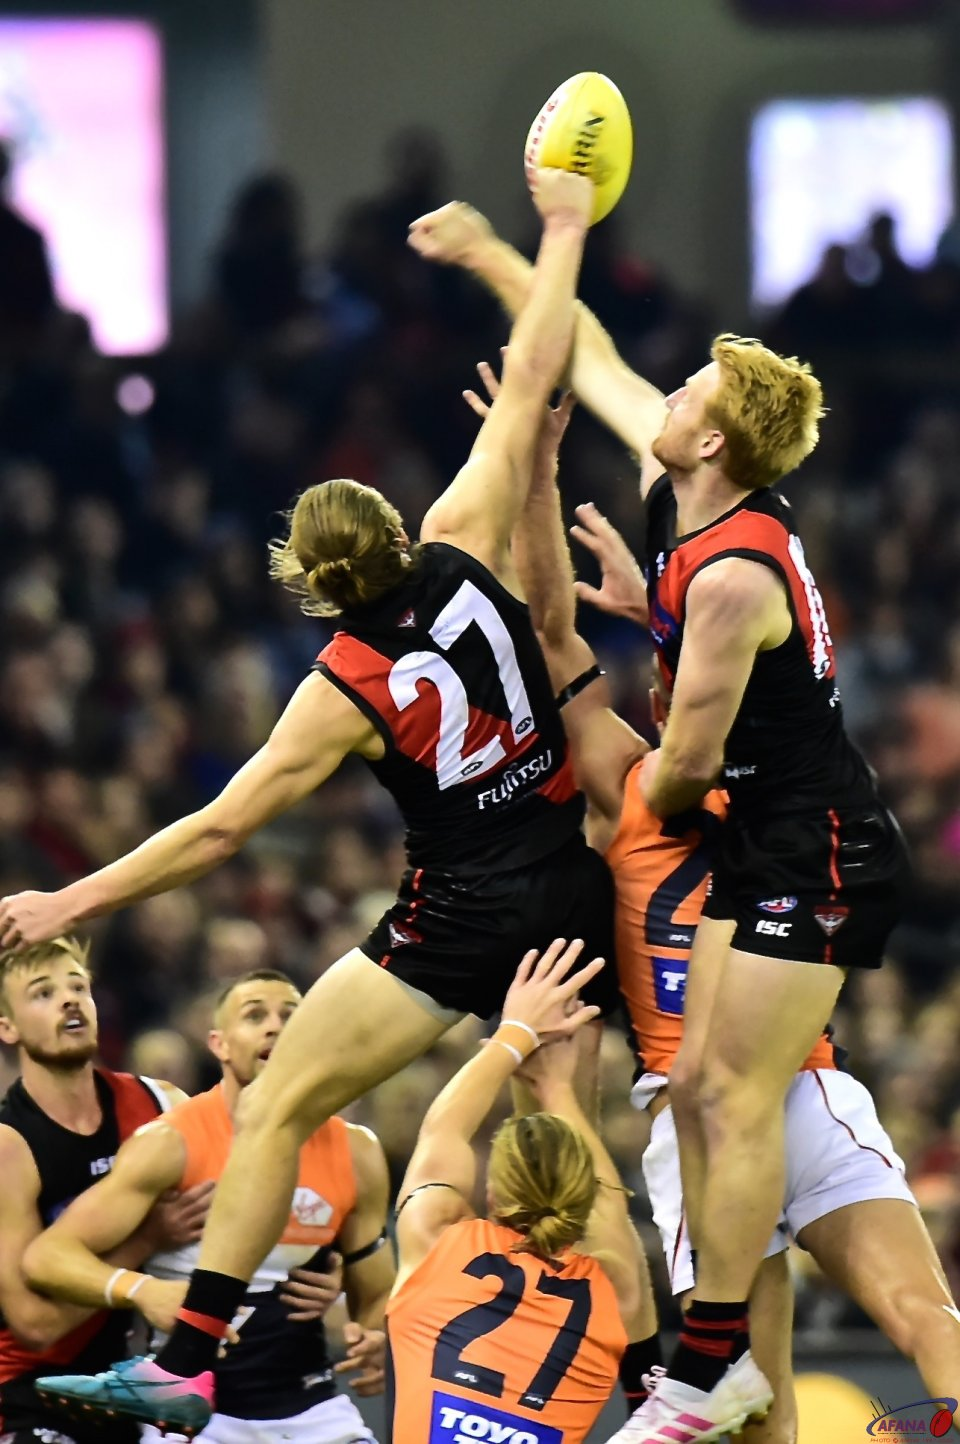 Aaron Francis and Mason Redman